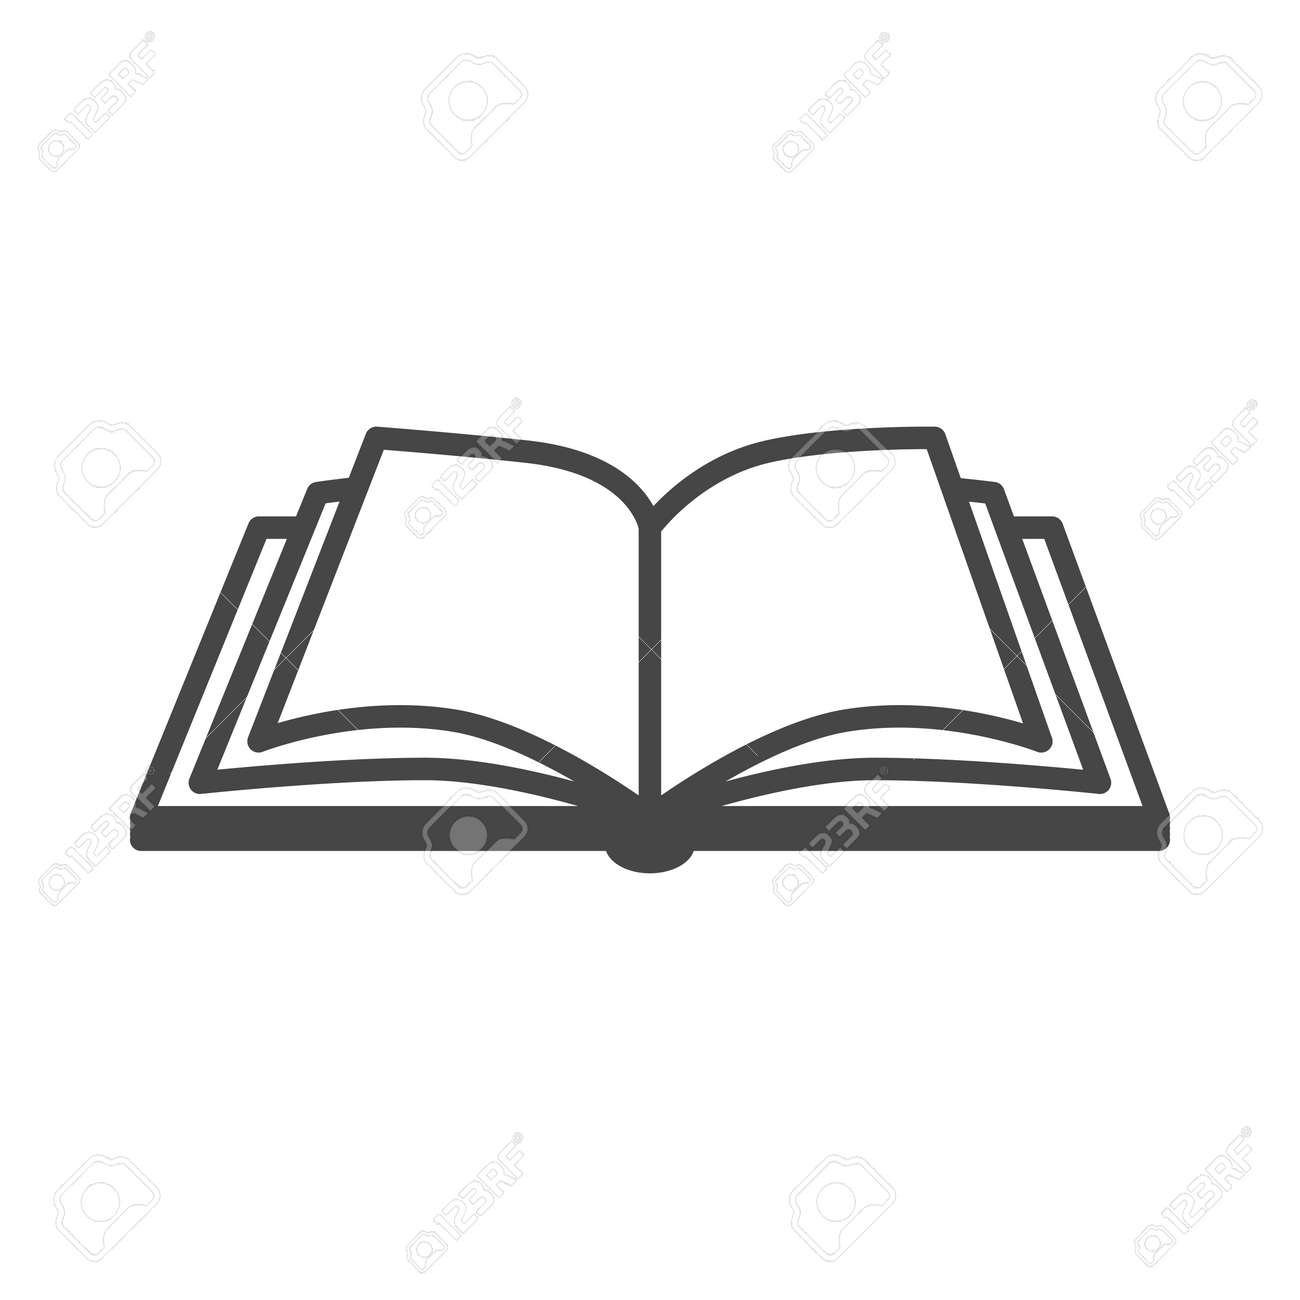 open book vector icon on a white background royalty free cliparts rh 123rf com book icon vector download book icon vector download